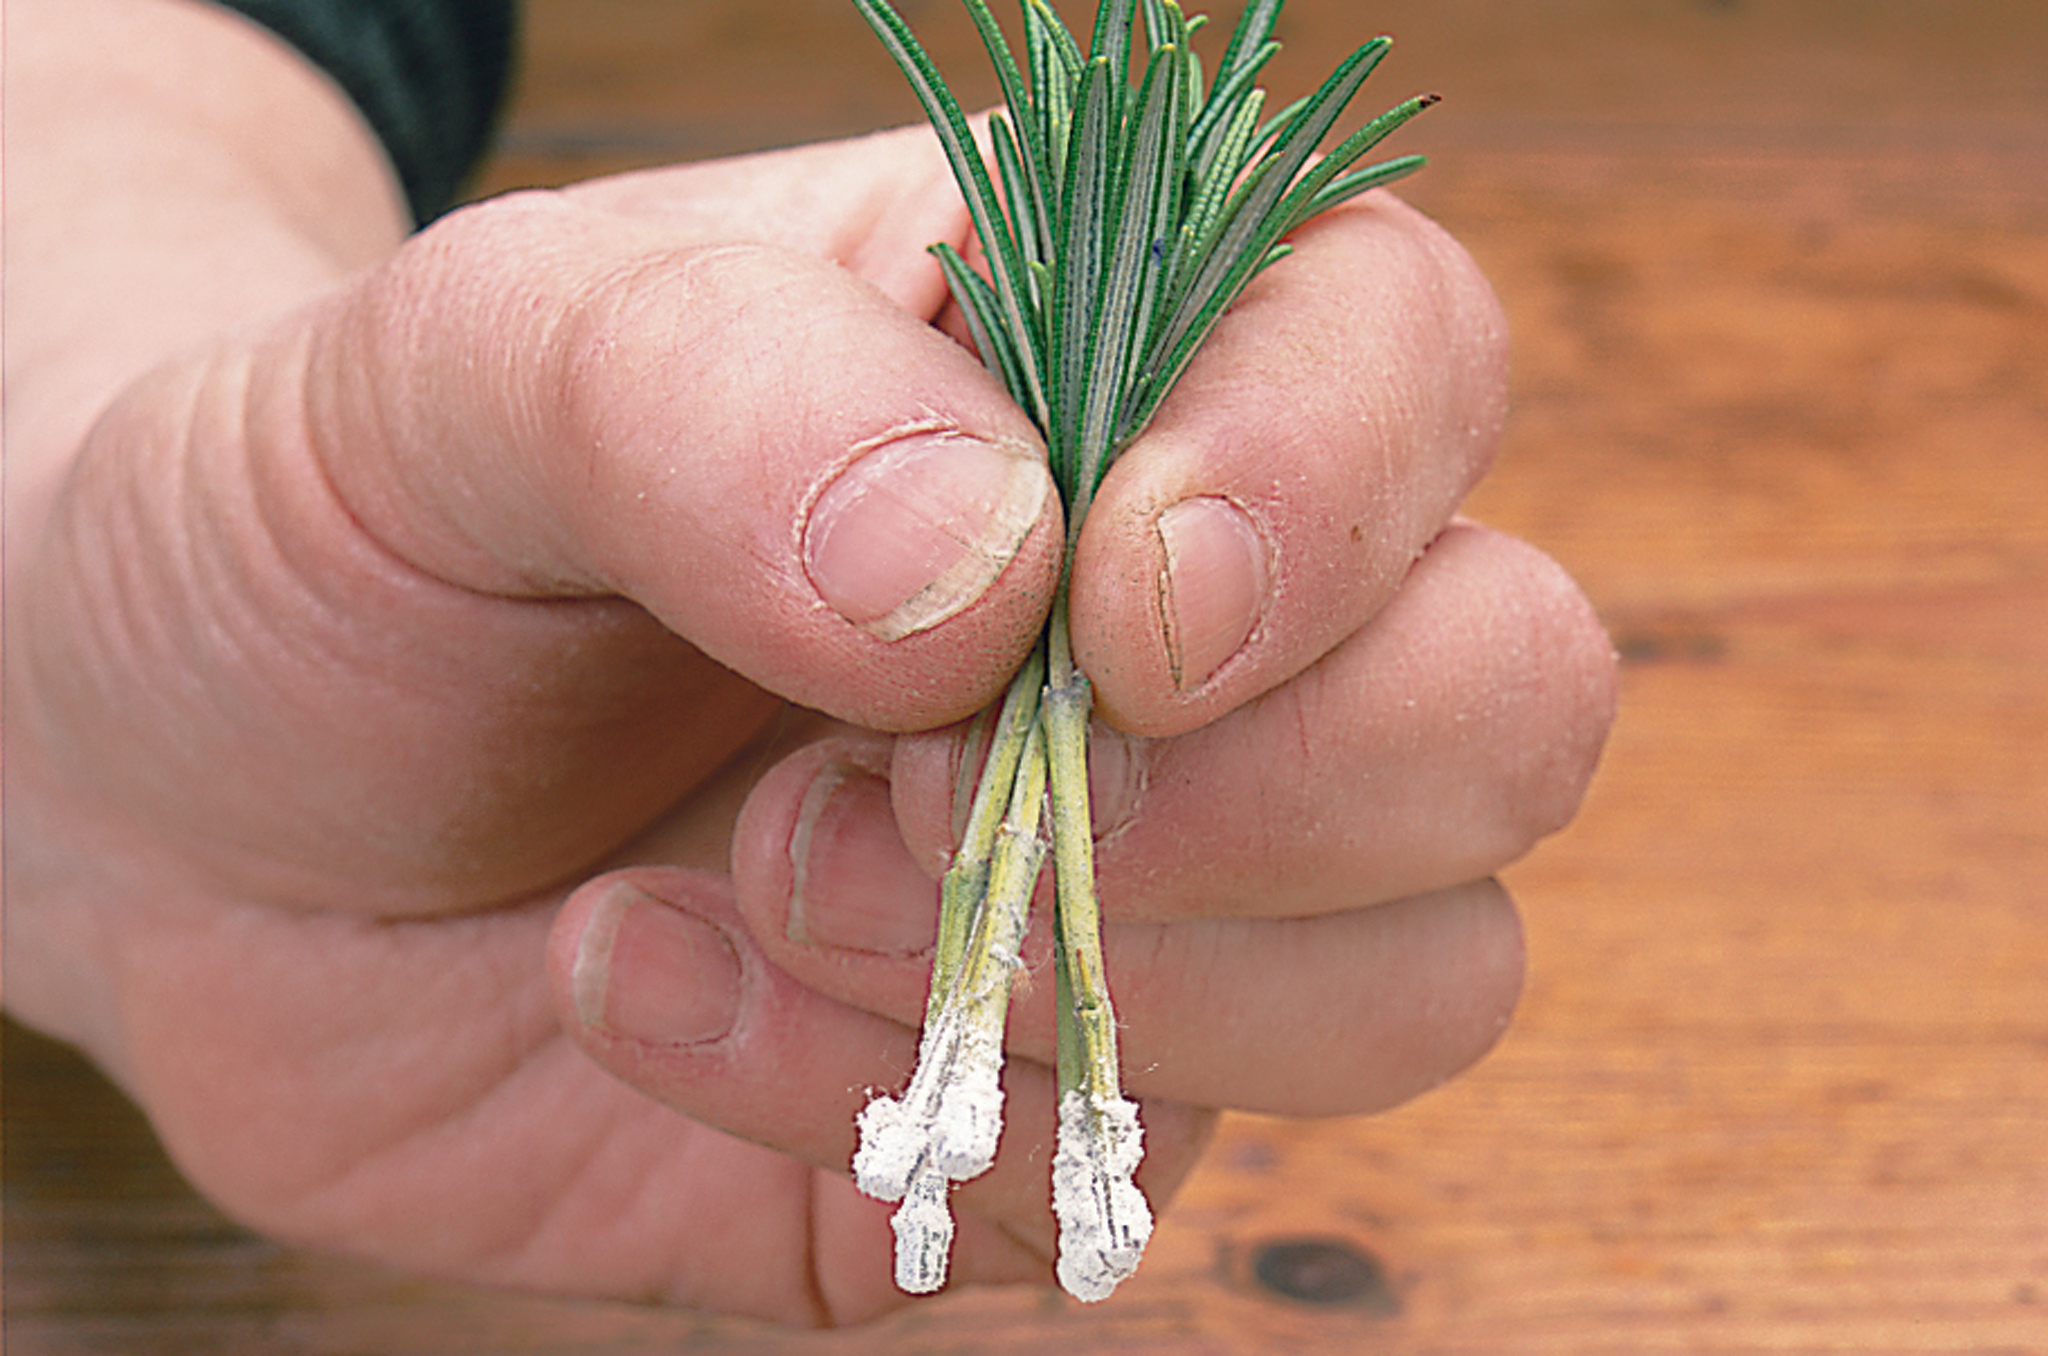 dipping-stems-in-rooting-powder-2